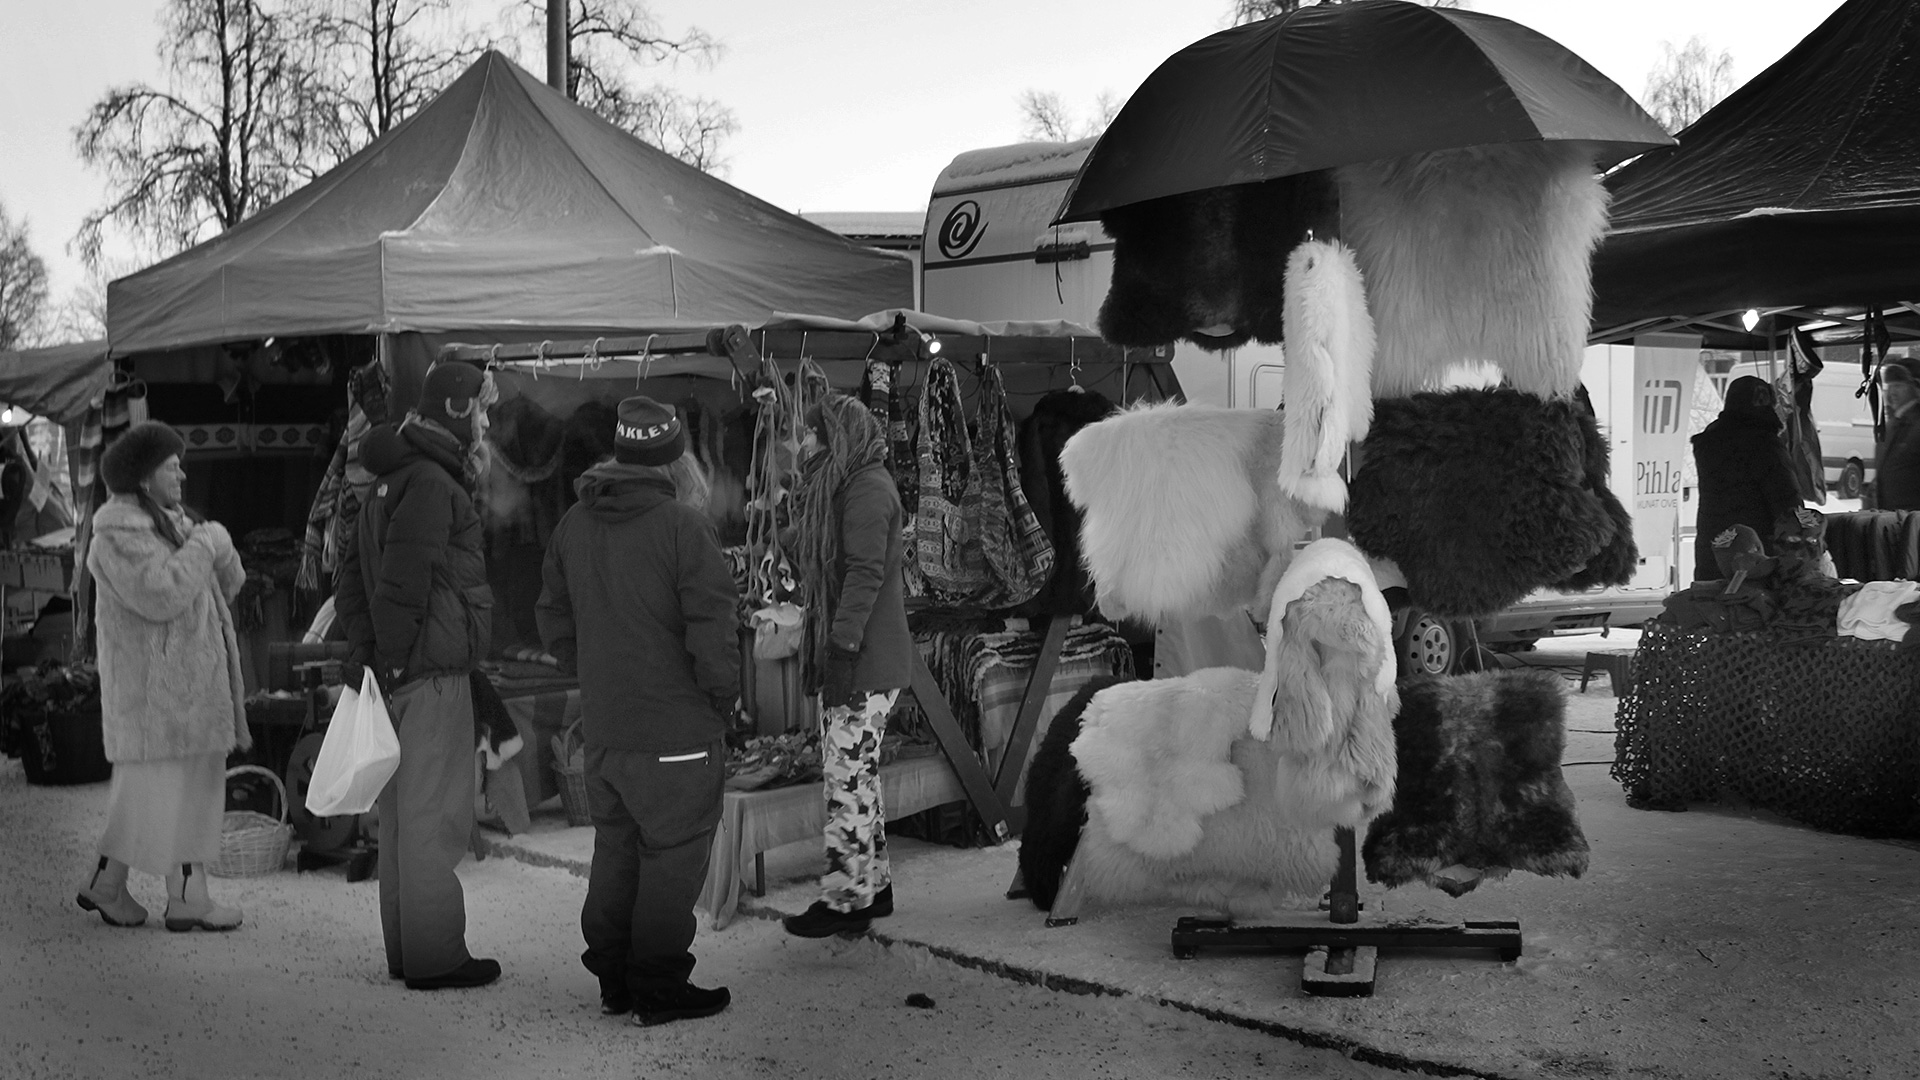 2016-02-04 - Vendor and visitors (black & white)